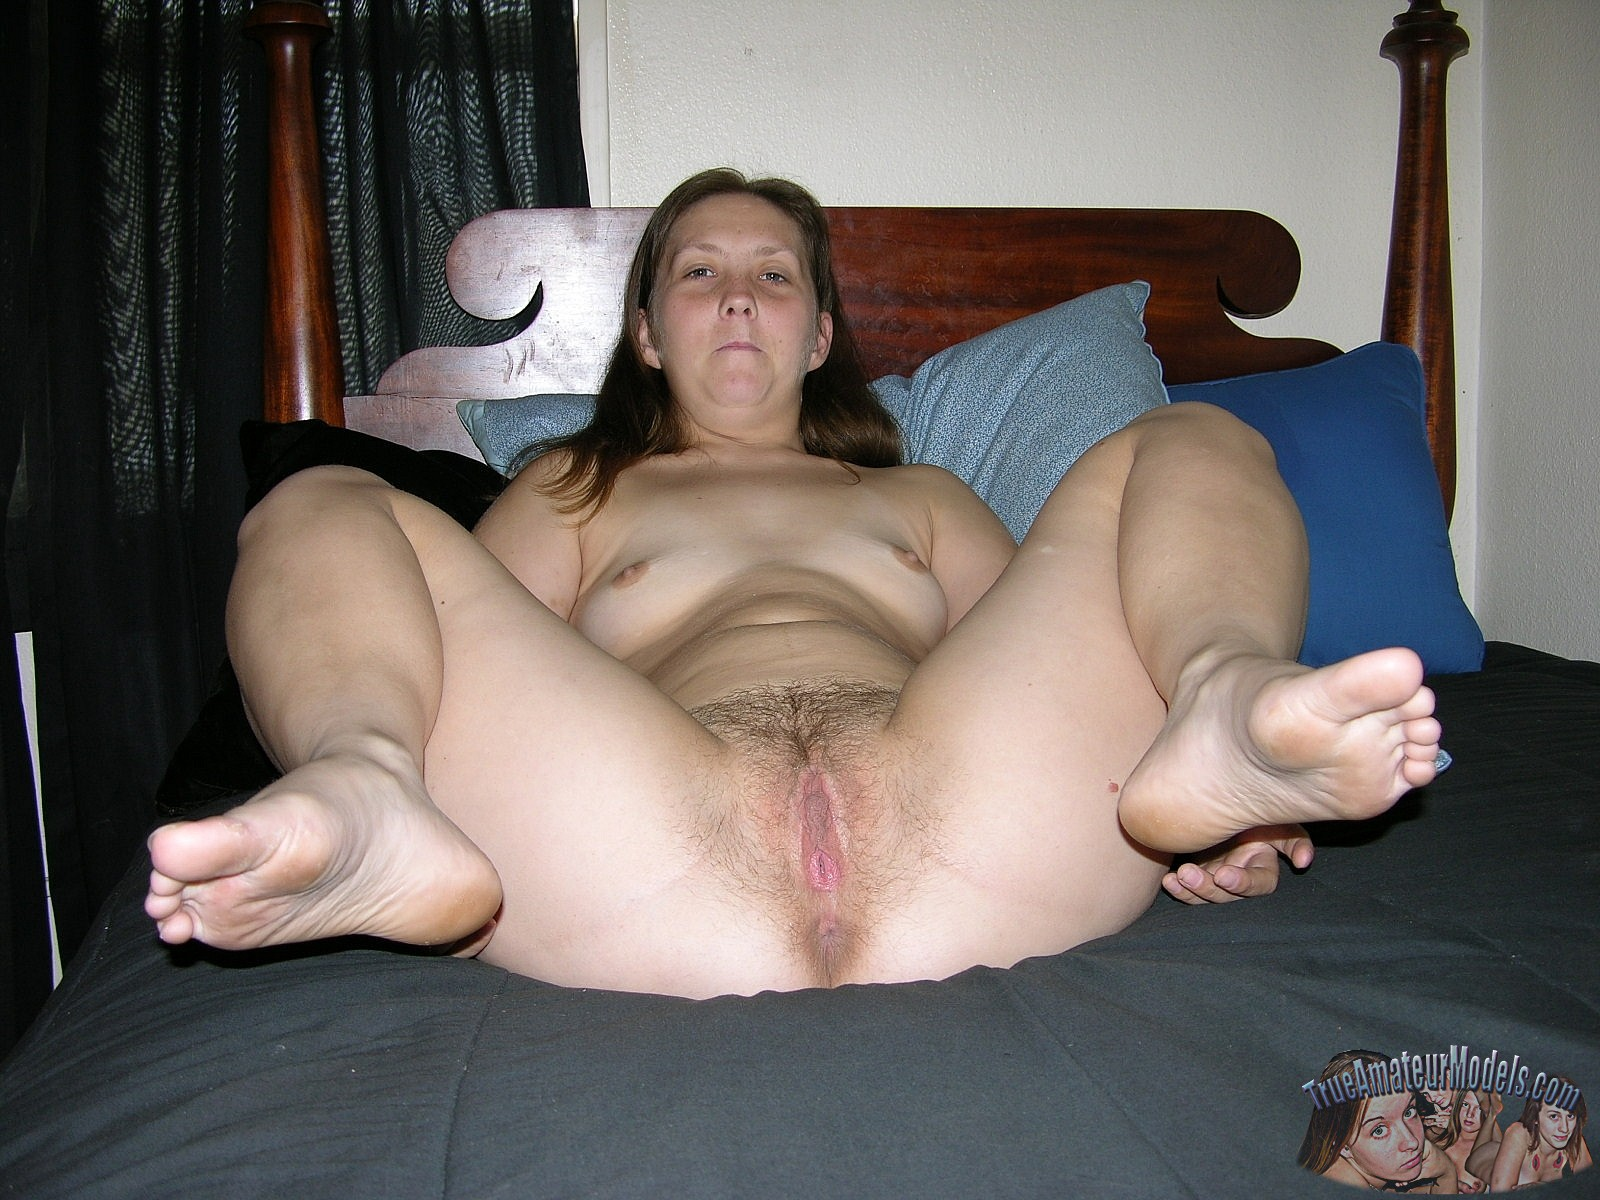 nude redneck women galleries